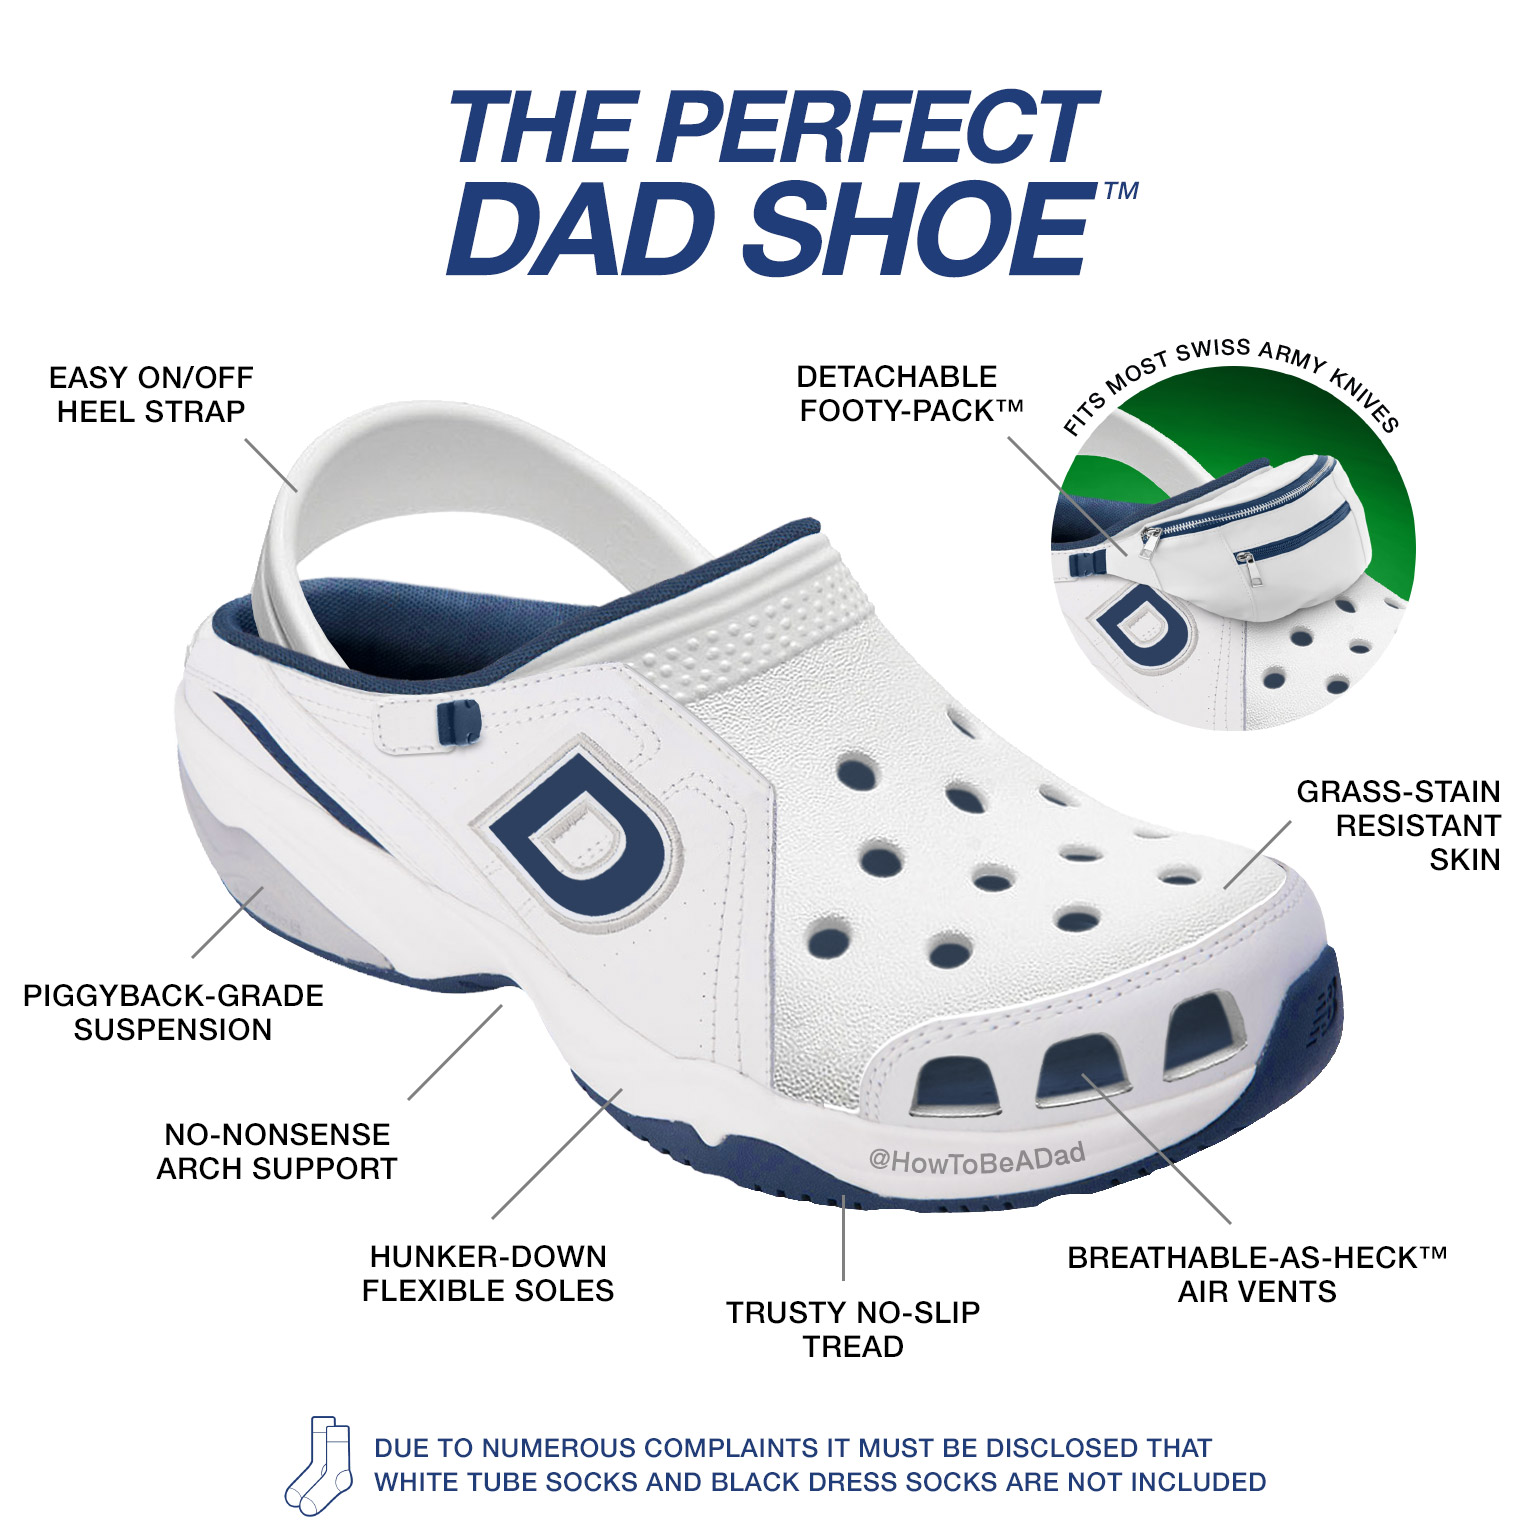 The Perfect Dad Shoe New Balance Crocs Fanny Pack